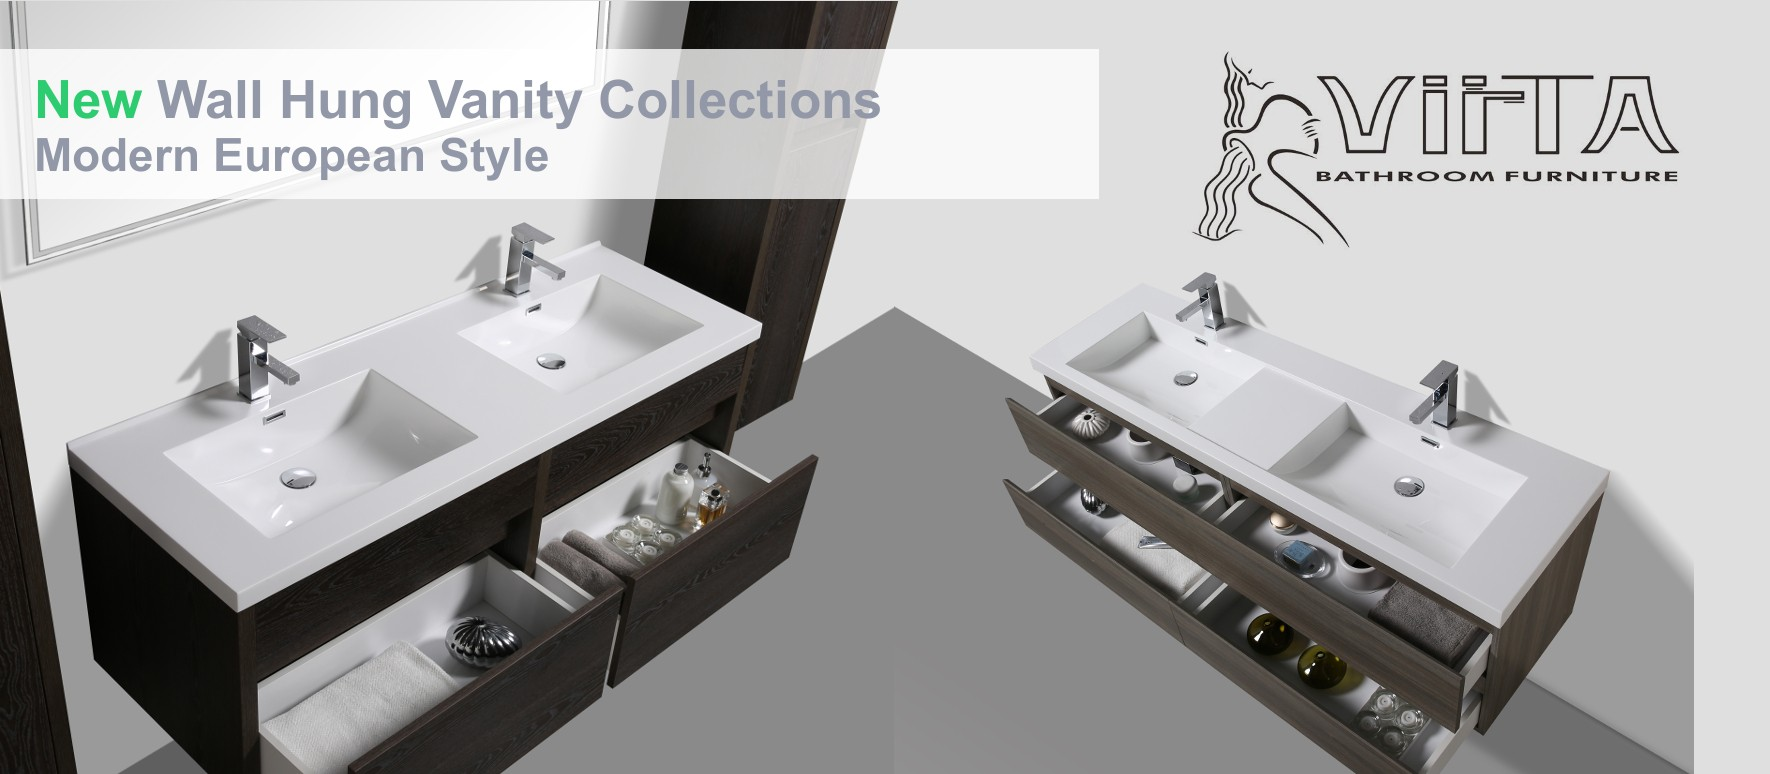 New Wall Hung Vanity Collections